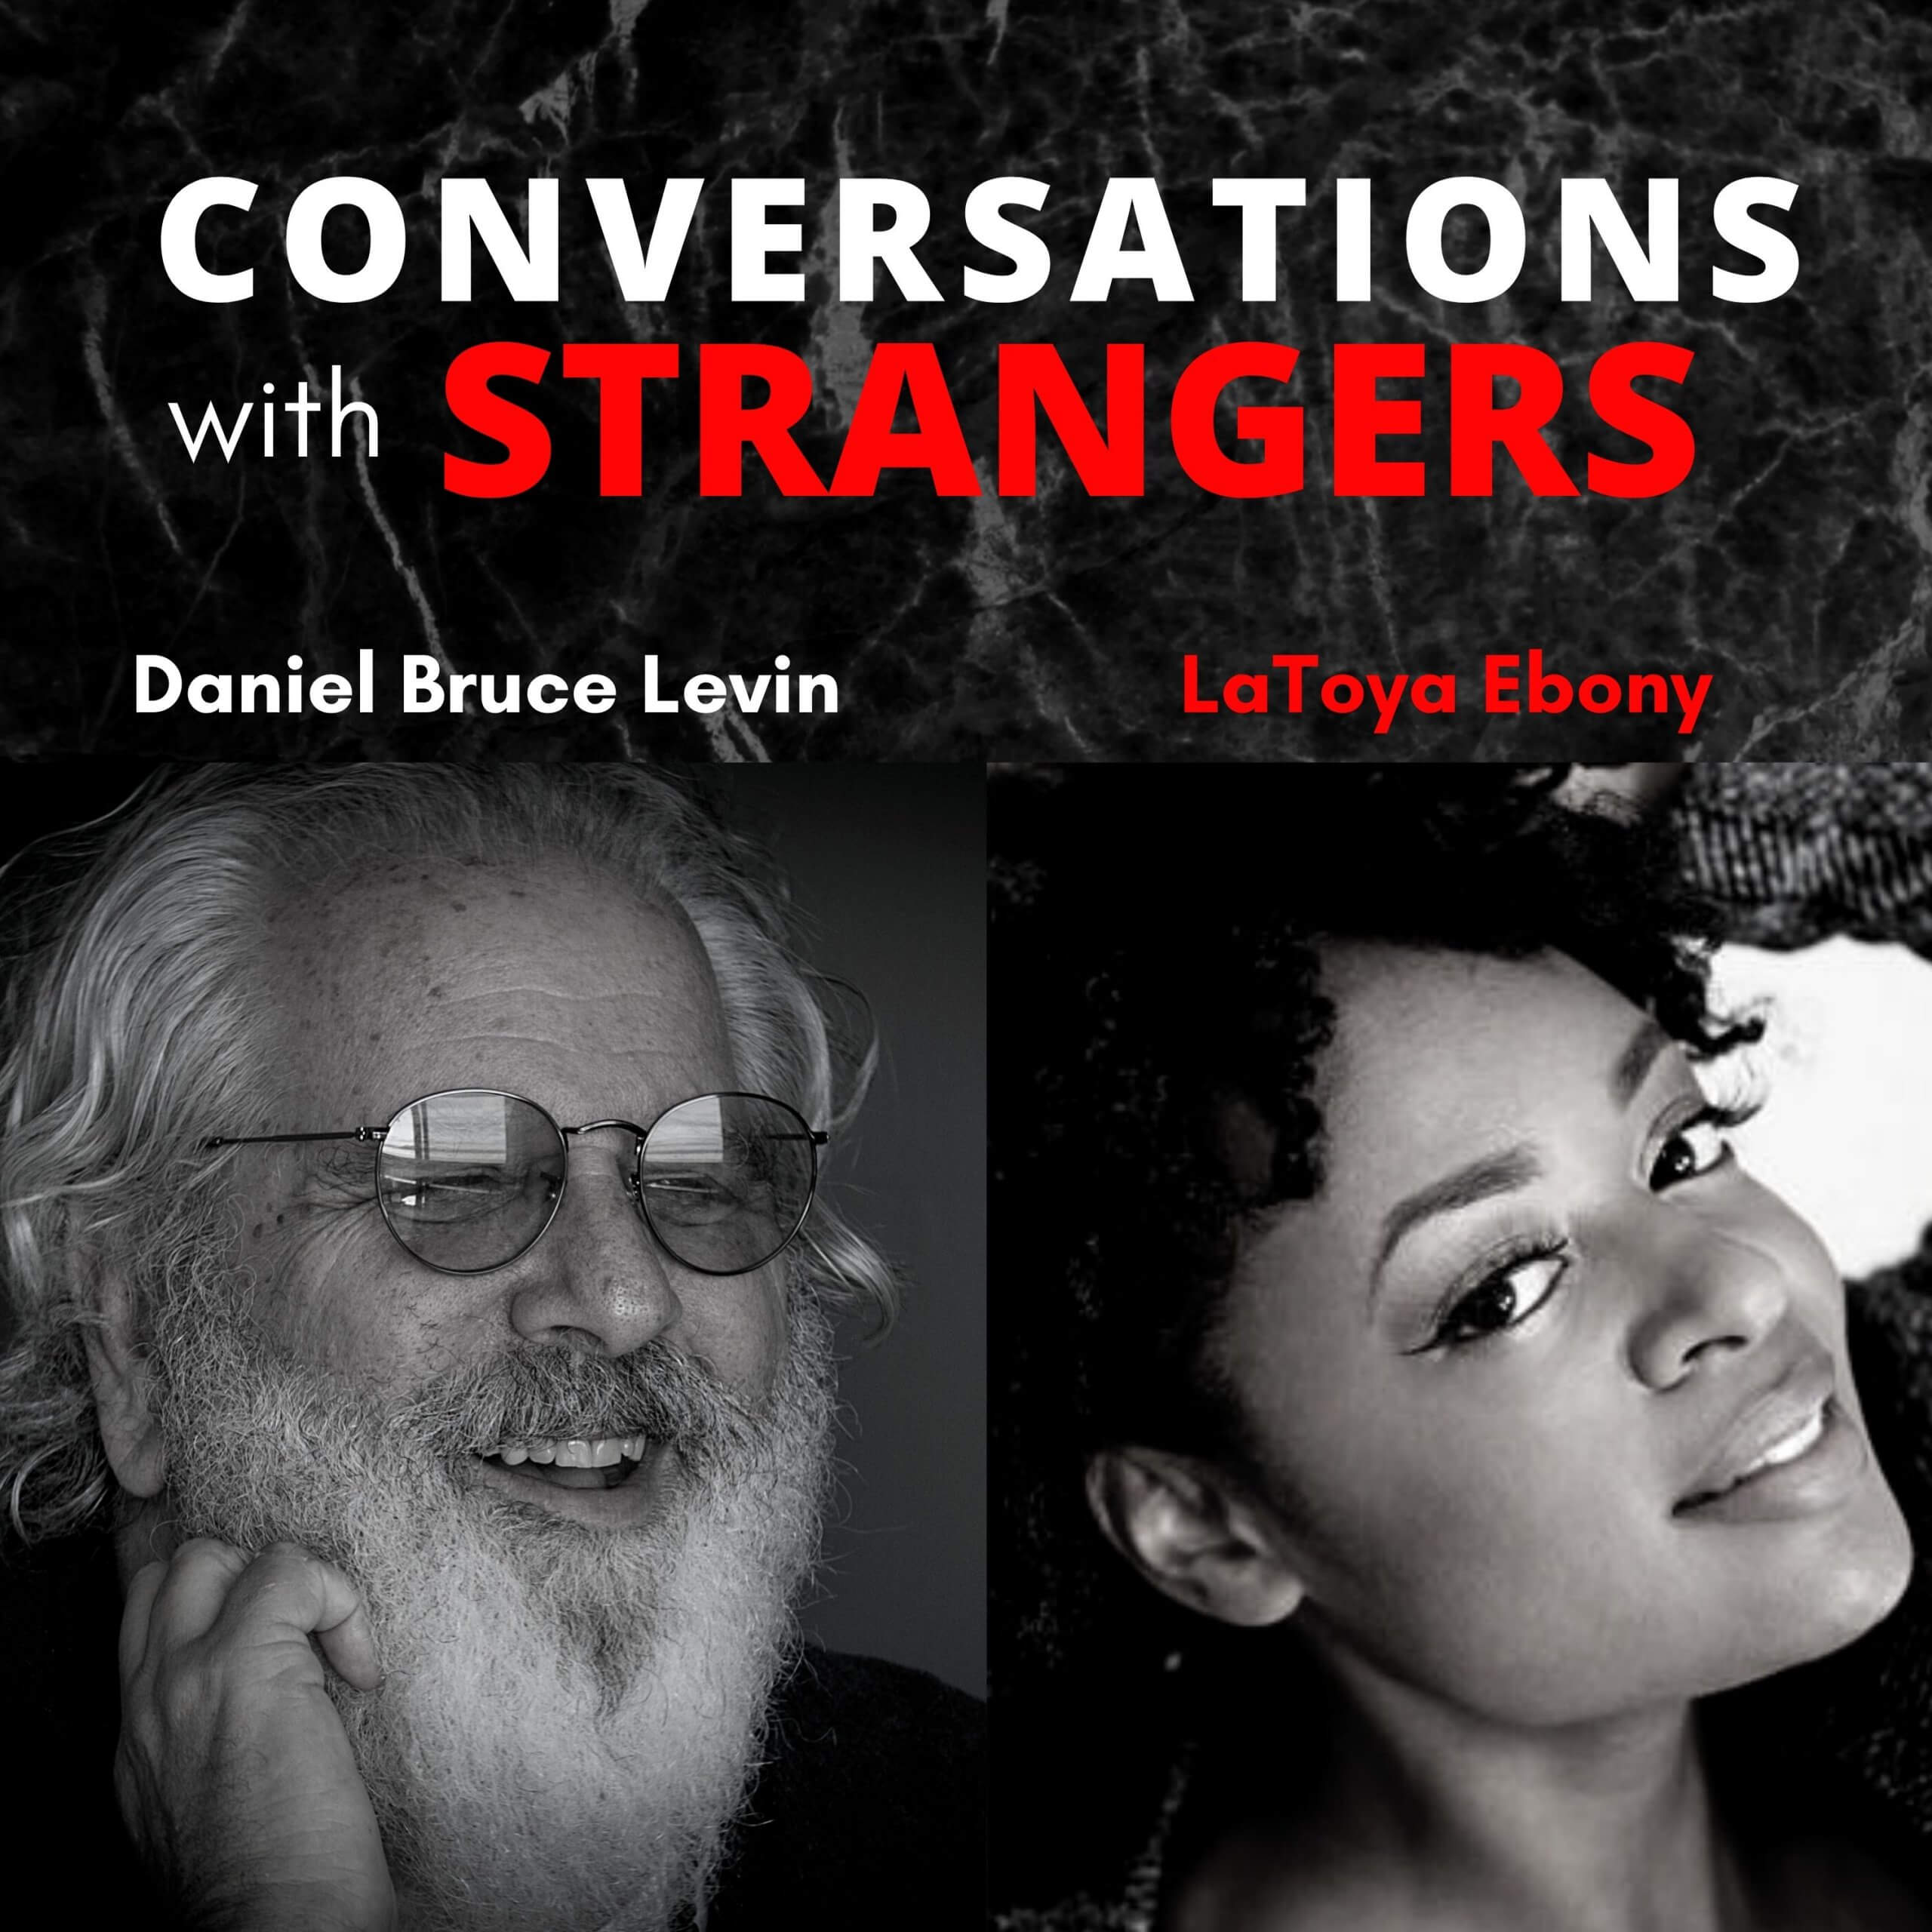 Conversations with Strangers feat. LaToya Ebony